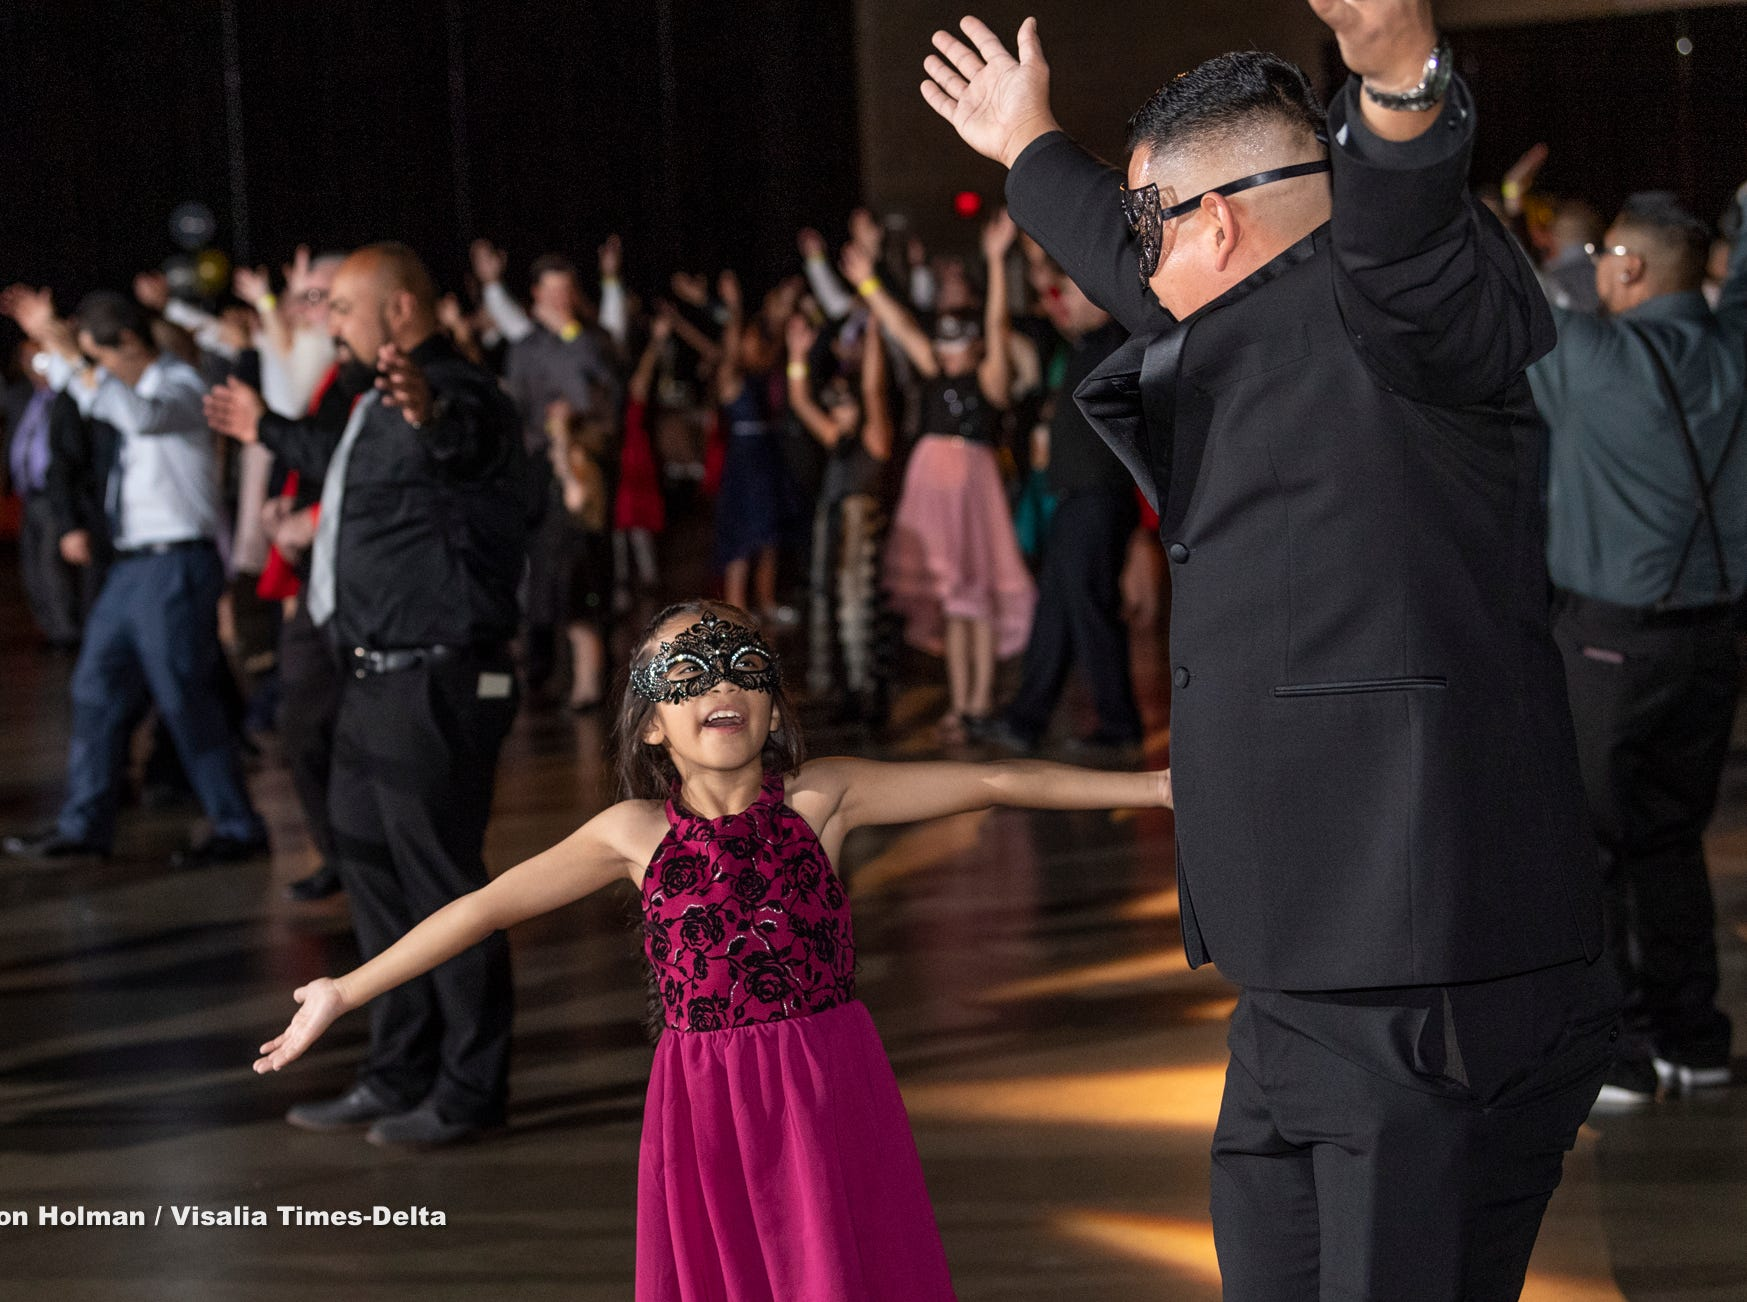 """Angela Jaramoillo, 8, dances with her father Agustin Jaramillo during the annual Father-Daughter Dance at the Visalia Convention Center on Saturday, February 16, 2019. This year's theme was """"Masquerade Ball,"""" and included music, dancing and refreshments."""